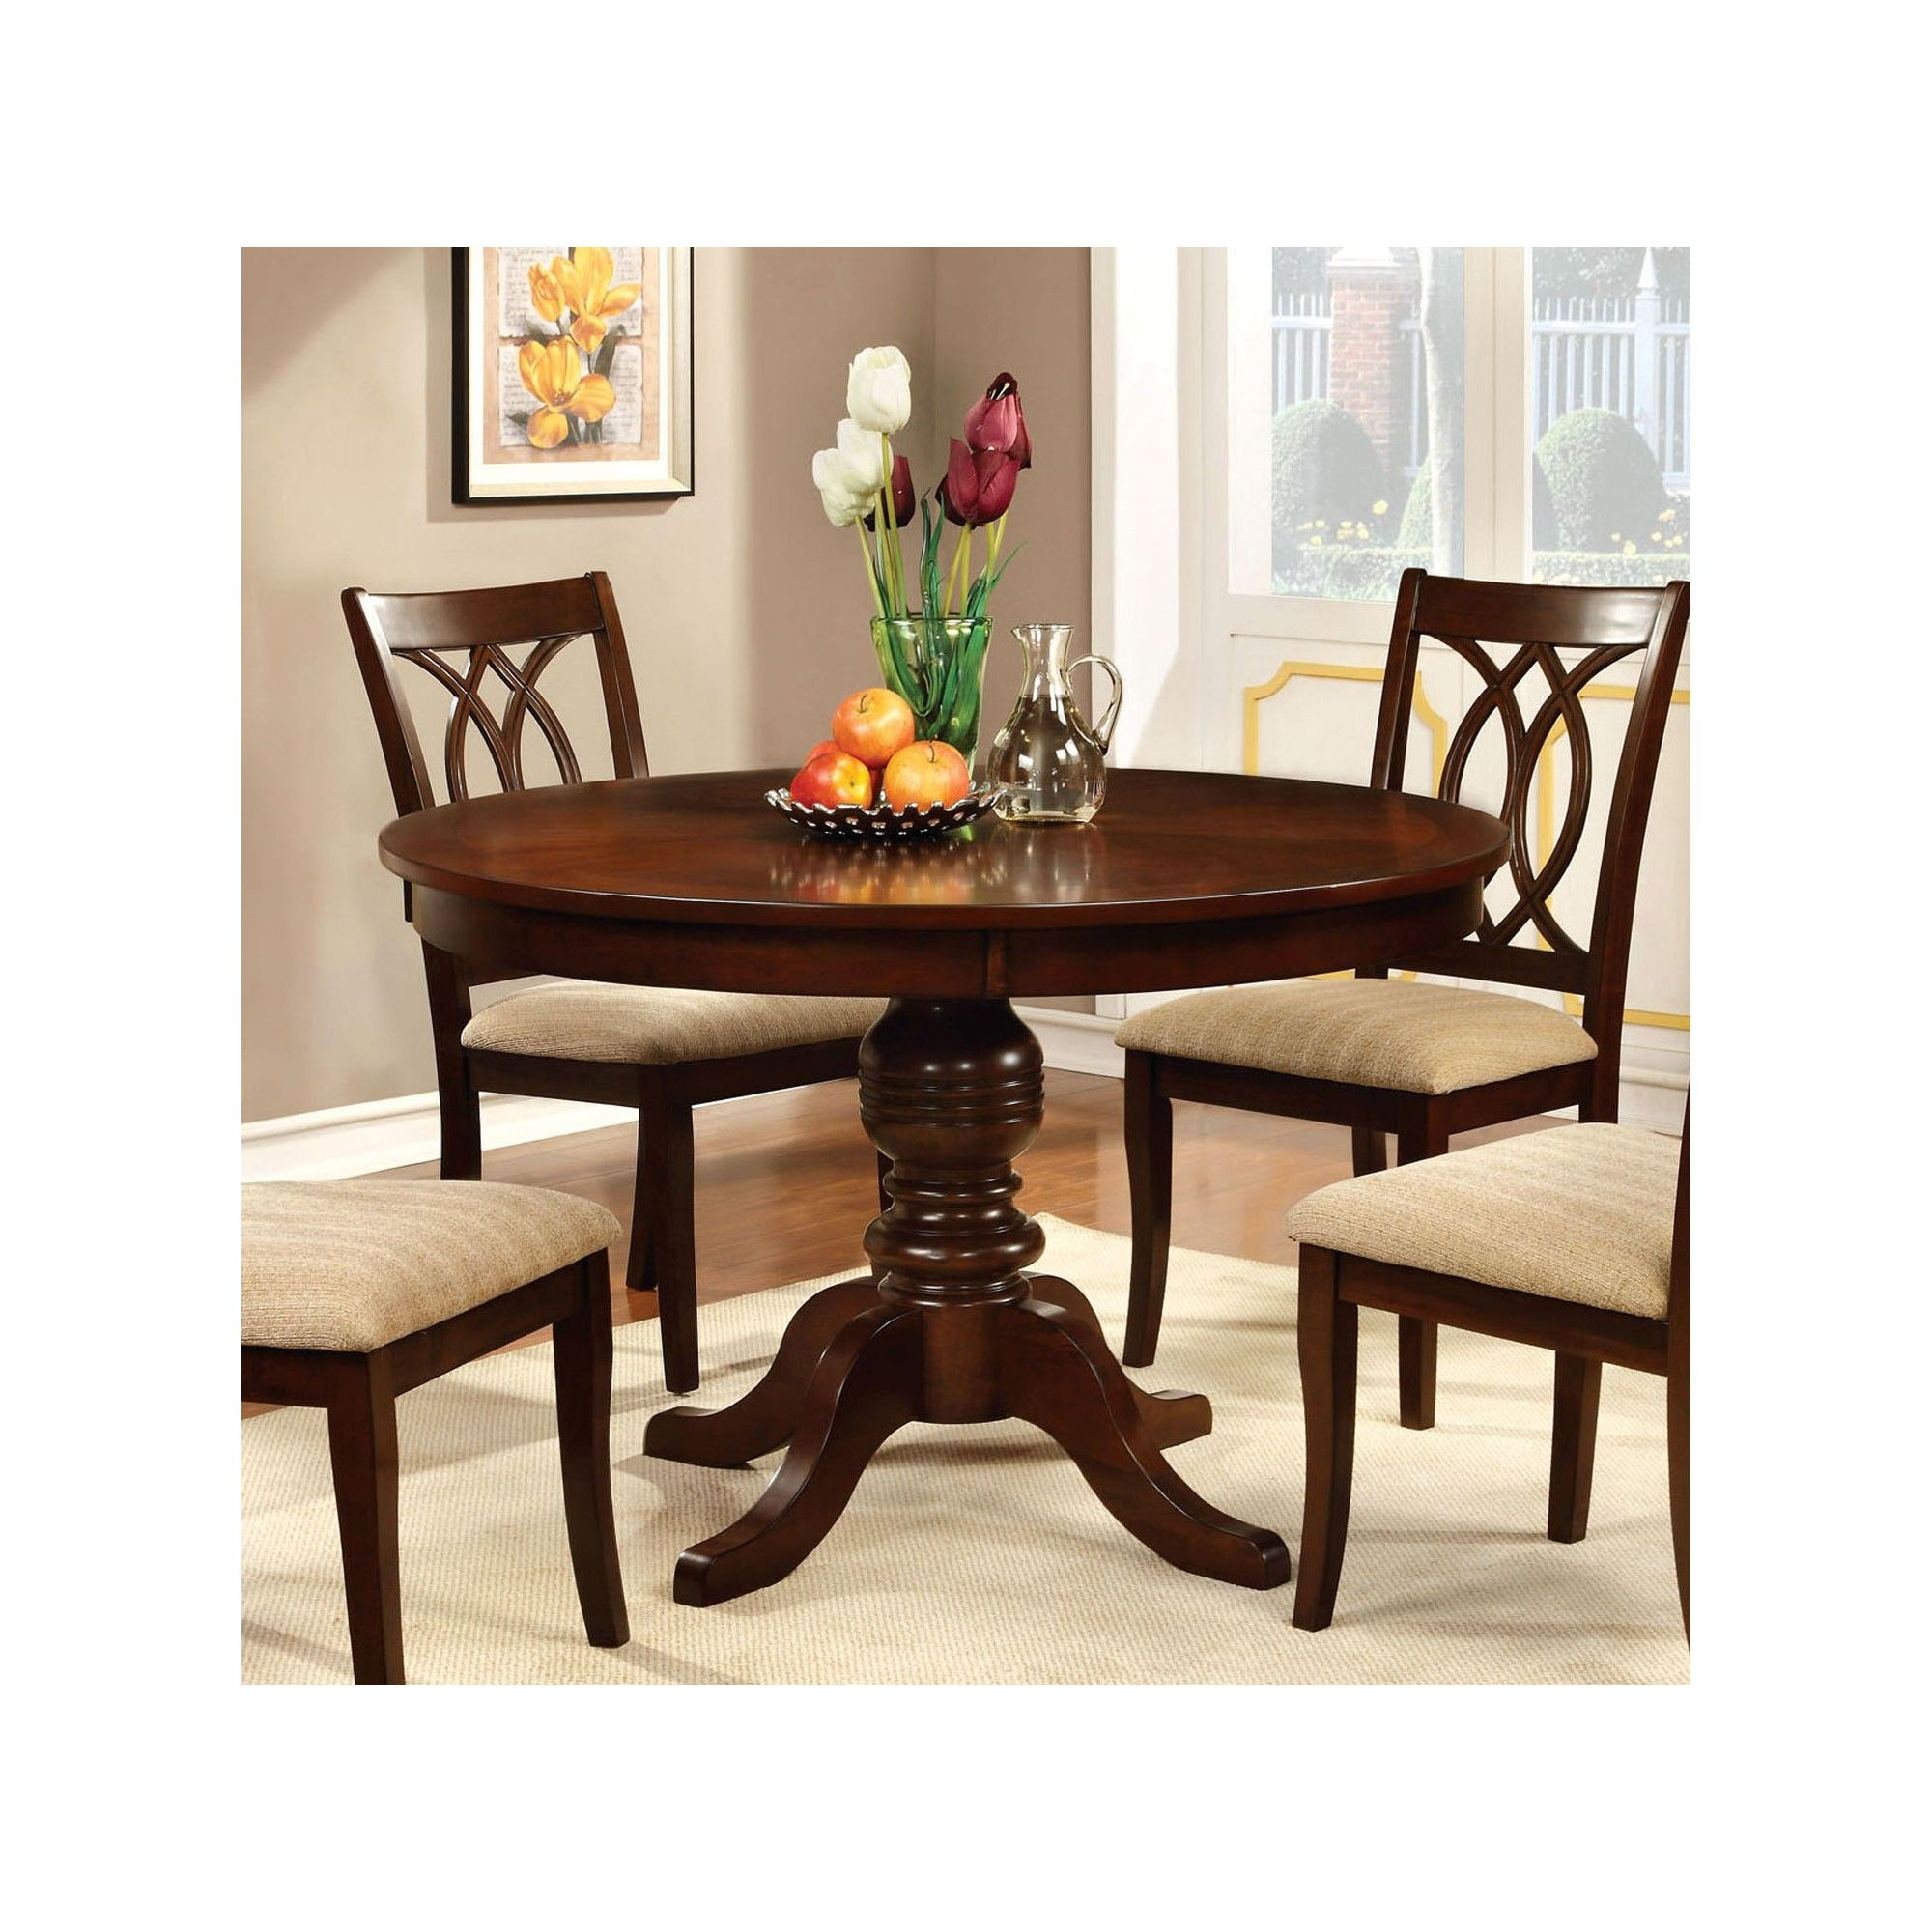 Round Table Top With Pedestal Dining Table Wood Brown Cherry